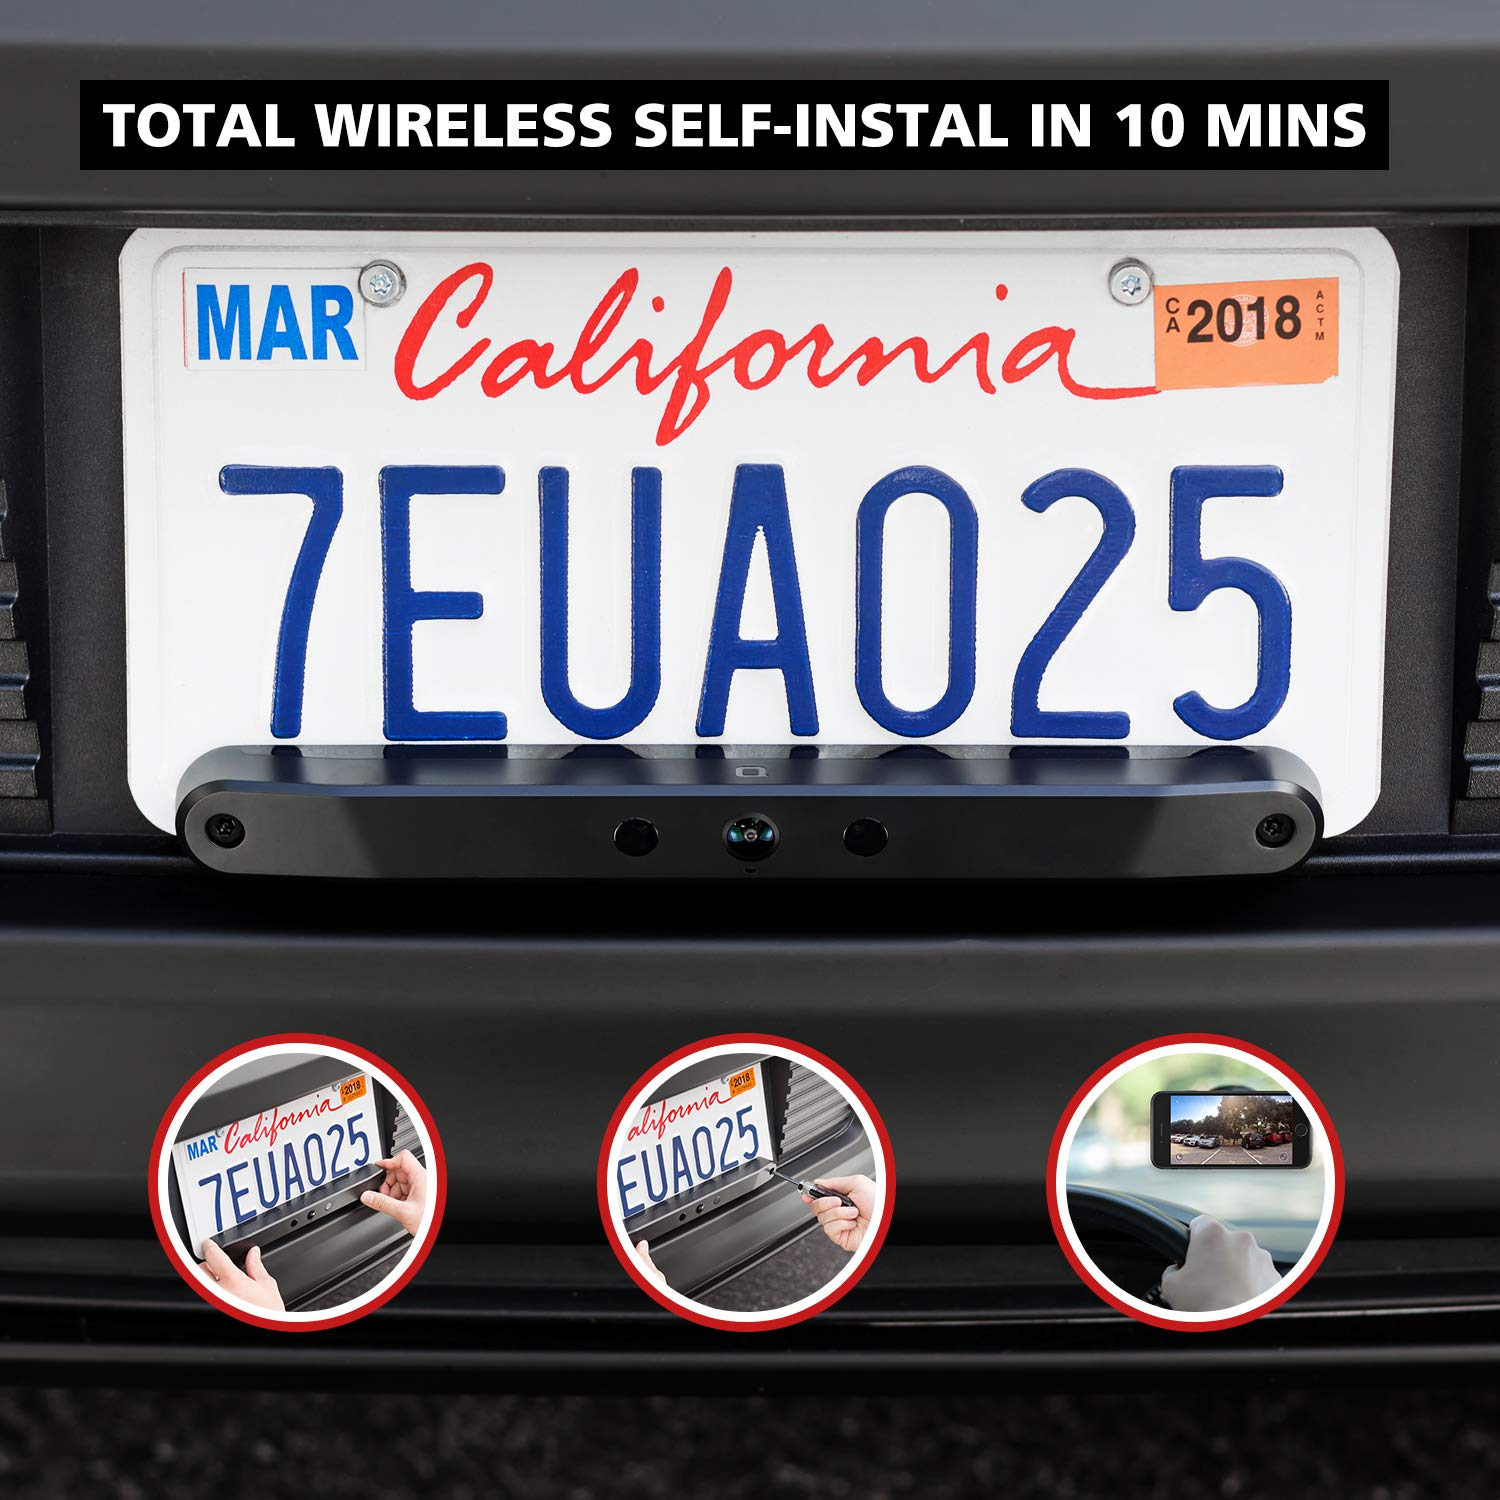 Real Wireless Rear View Camera with 170 Degrees Wide Angle and Rechargeable Battery IP67 Waterproof Easy Installation with No Wiring or Drilling Needed ZURCBKUAL-A nonda ZUS Smart Backup Camera